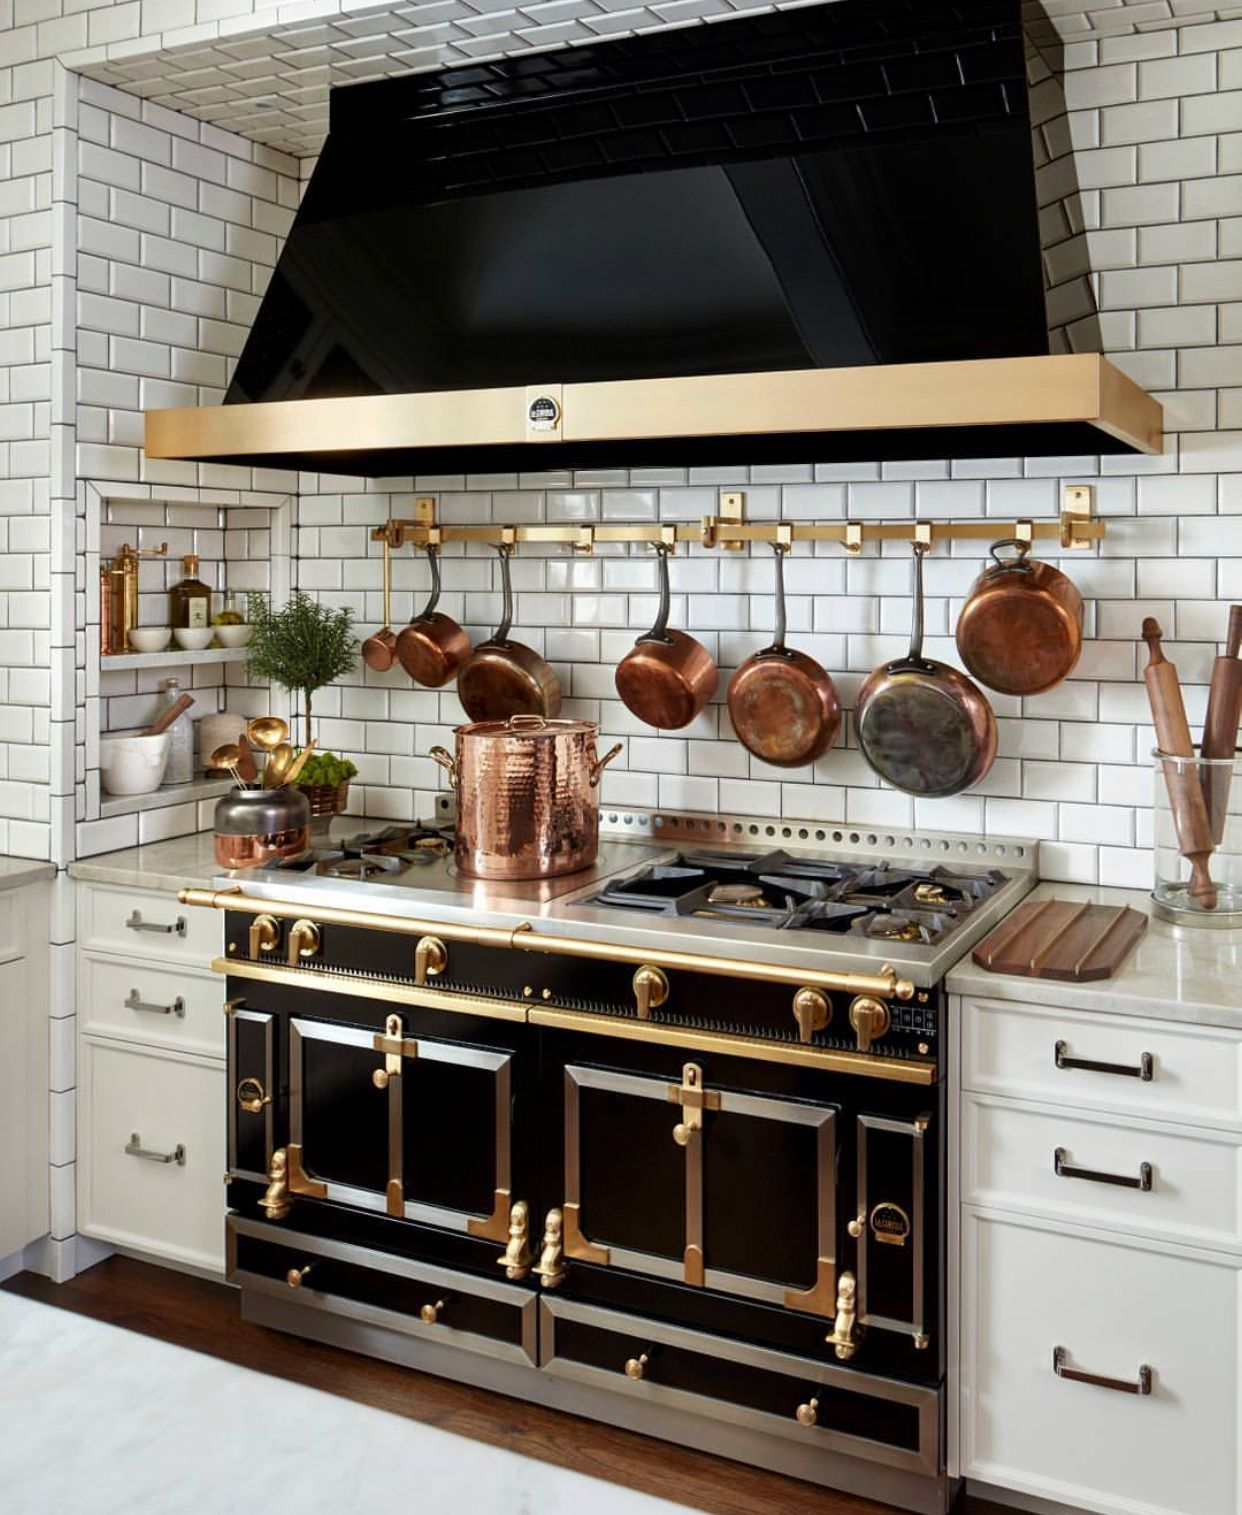 Kitchen Renovation Trends 2015 27 Ideas To Inspire: 27+ Kitchen Countertop Ideas To Make Your Kitchen Stand